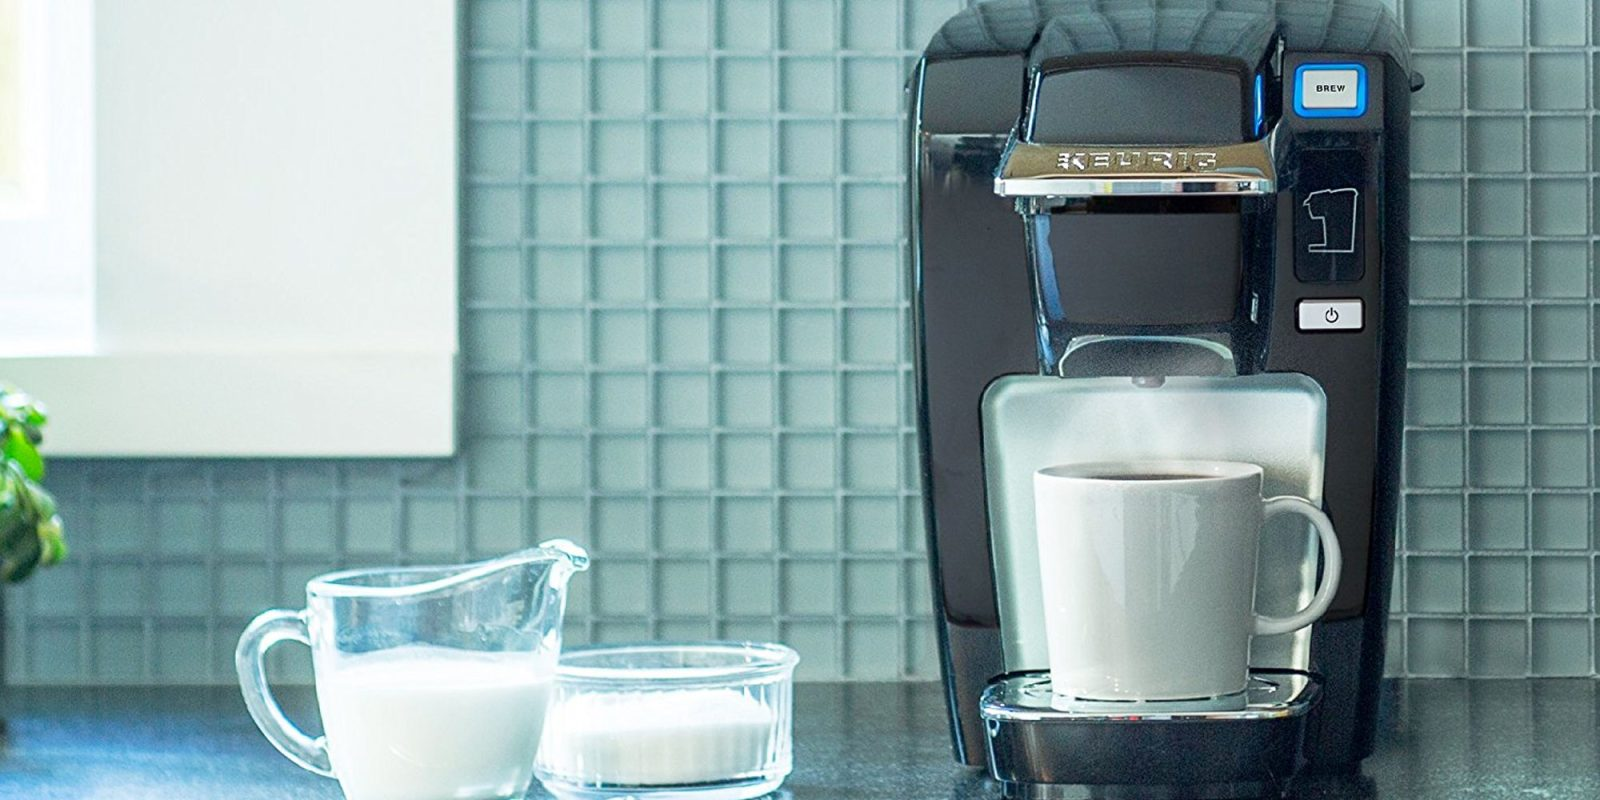 Keurigs K Mini Coffee Maker Will Brew Drinks To Help Keep You Warm